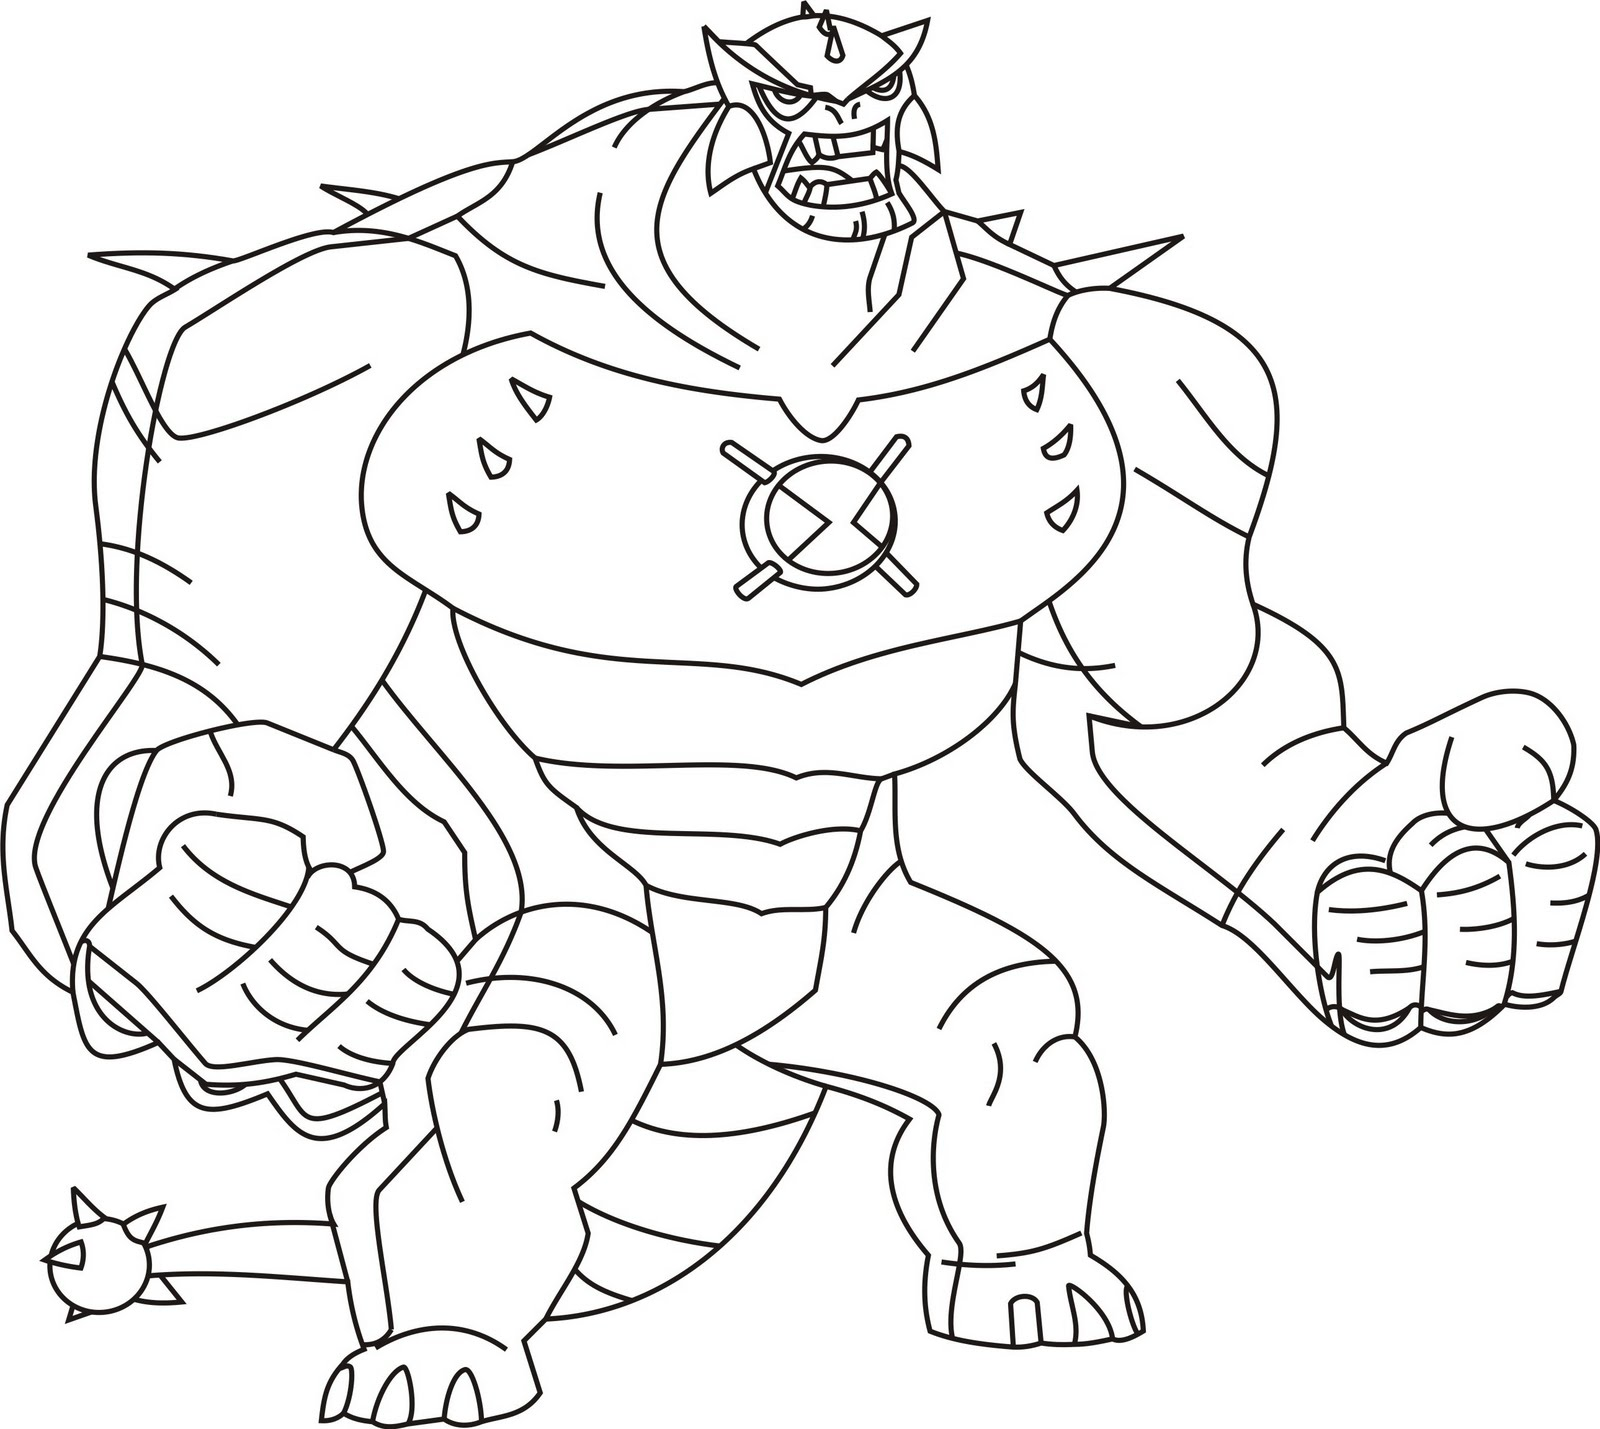 Free Printable Ben 10 Coloring Pages For Kids Ben 10 Ultimate Coloring Pages